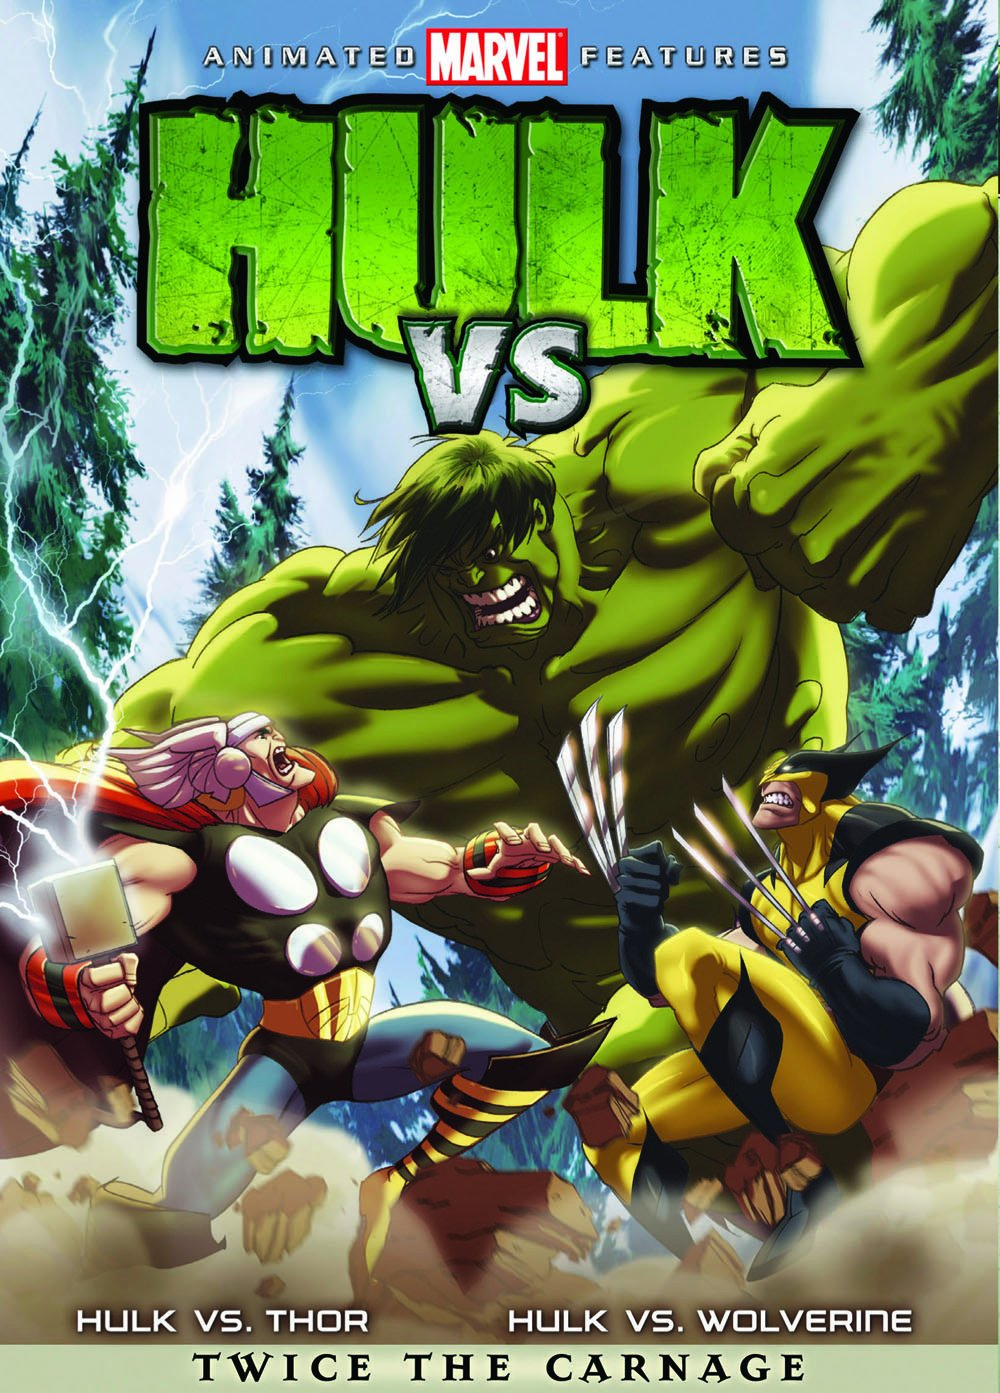 Hulk Vs. [Marvel 616 cartoon]